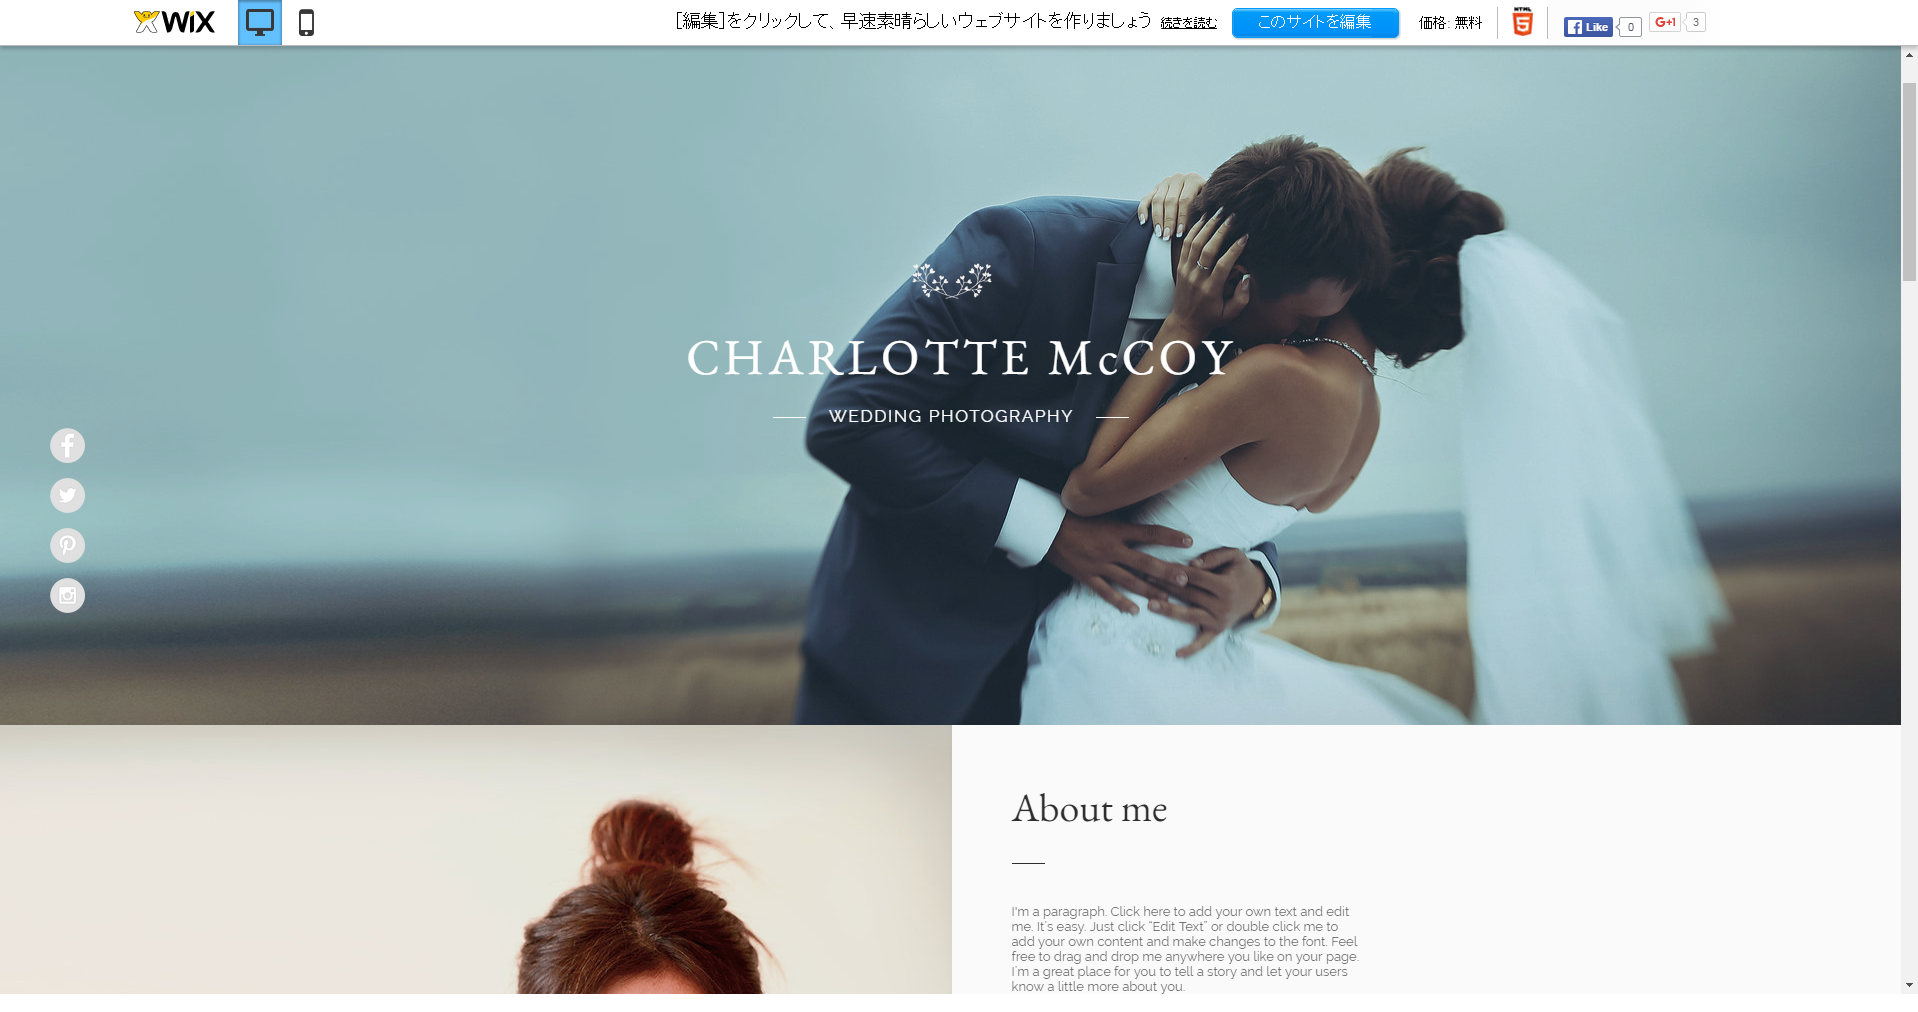 FireShot Capture 20 - Wedding Photography テンプレー_ - http___ja.wix.com_website-template_view_html_1721